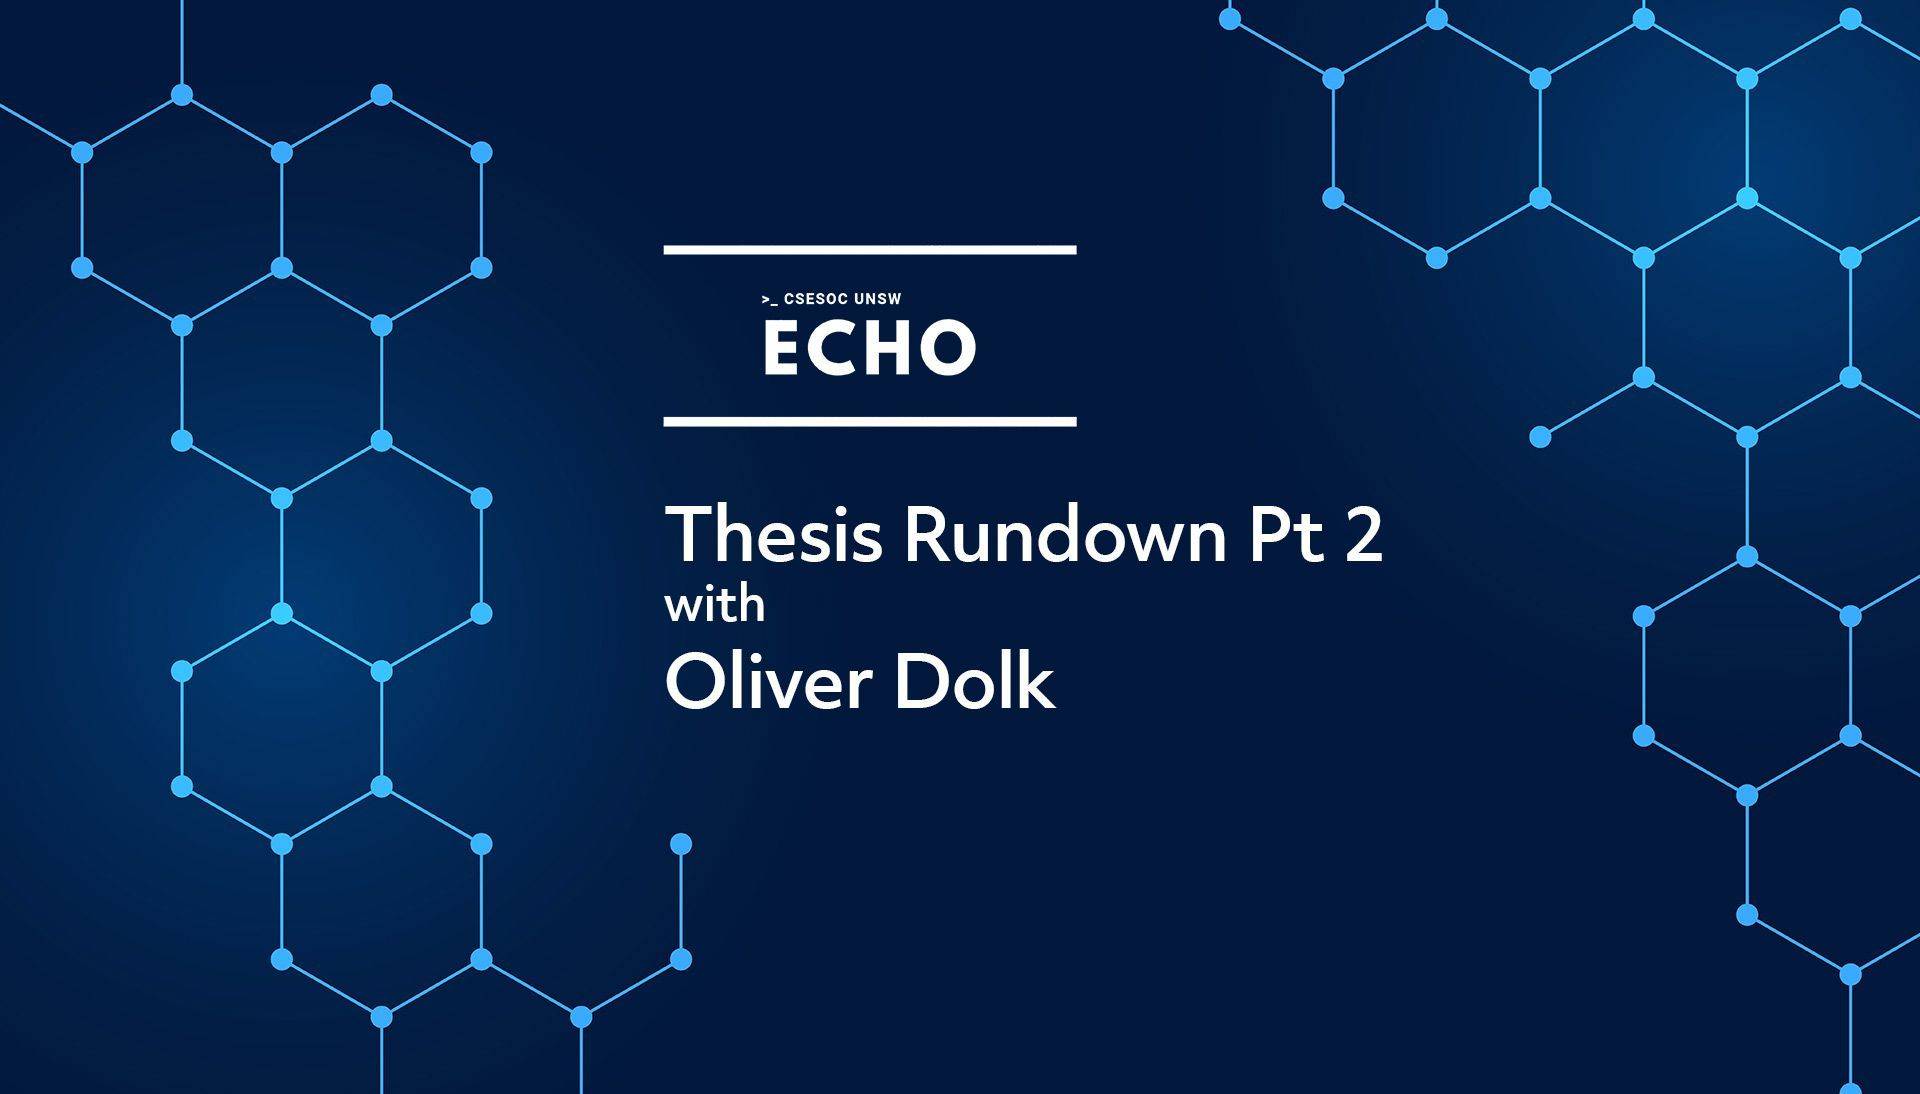 Thesis Rundown Pt 2 w/ Oliver Dolk